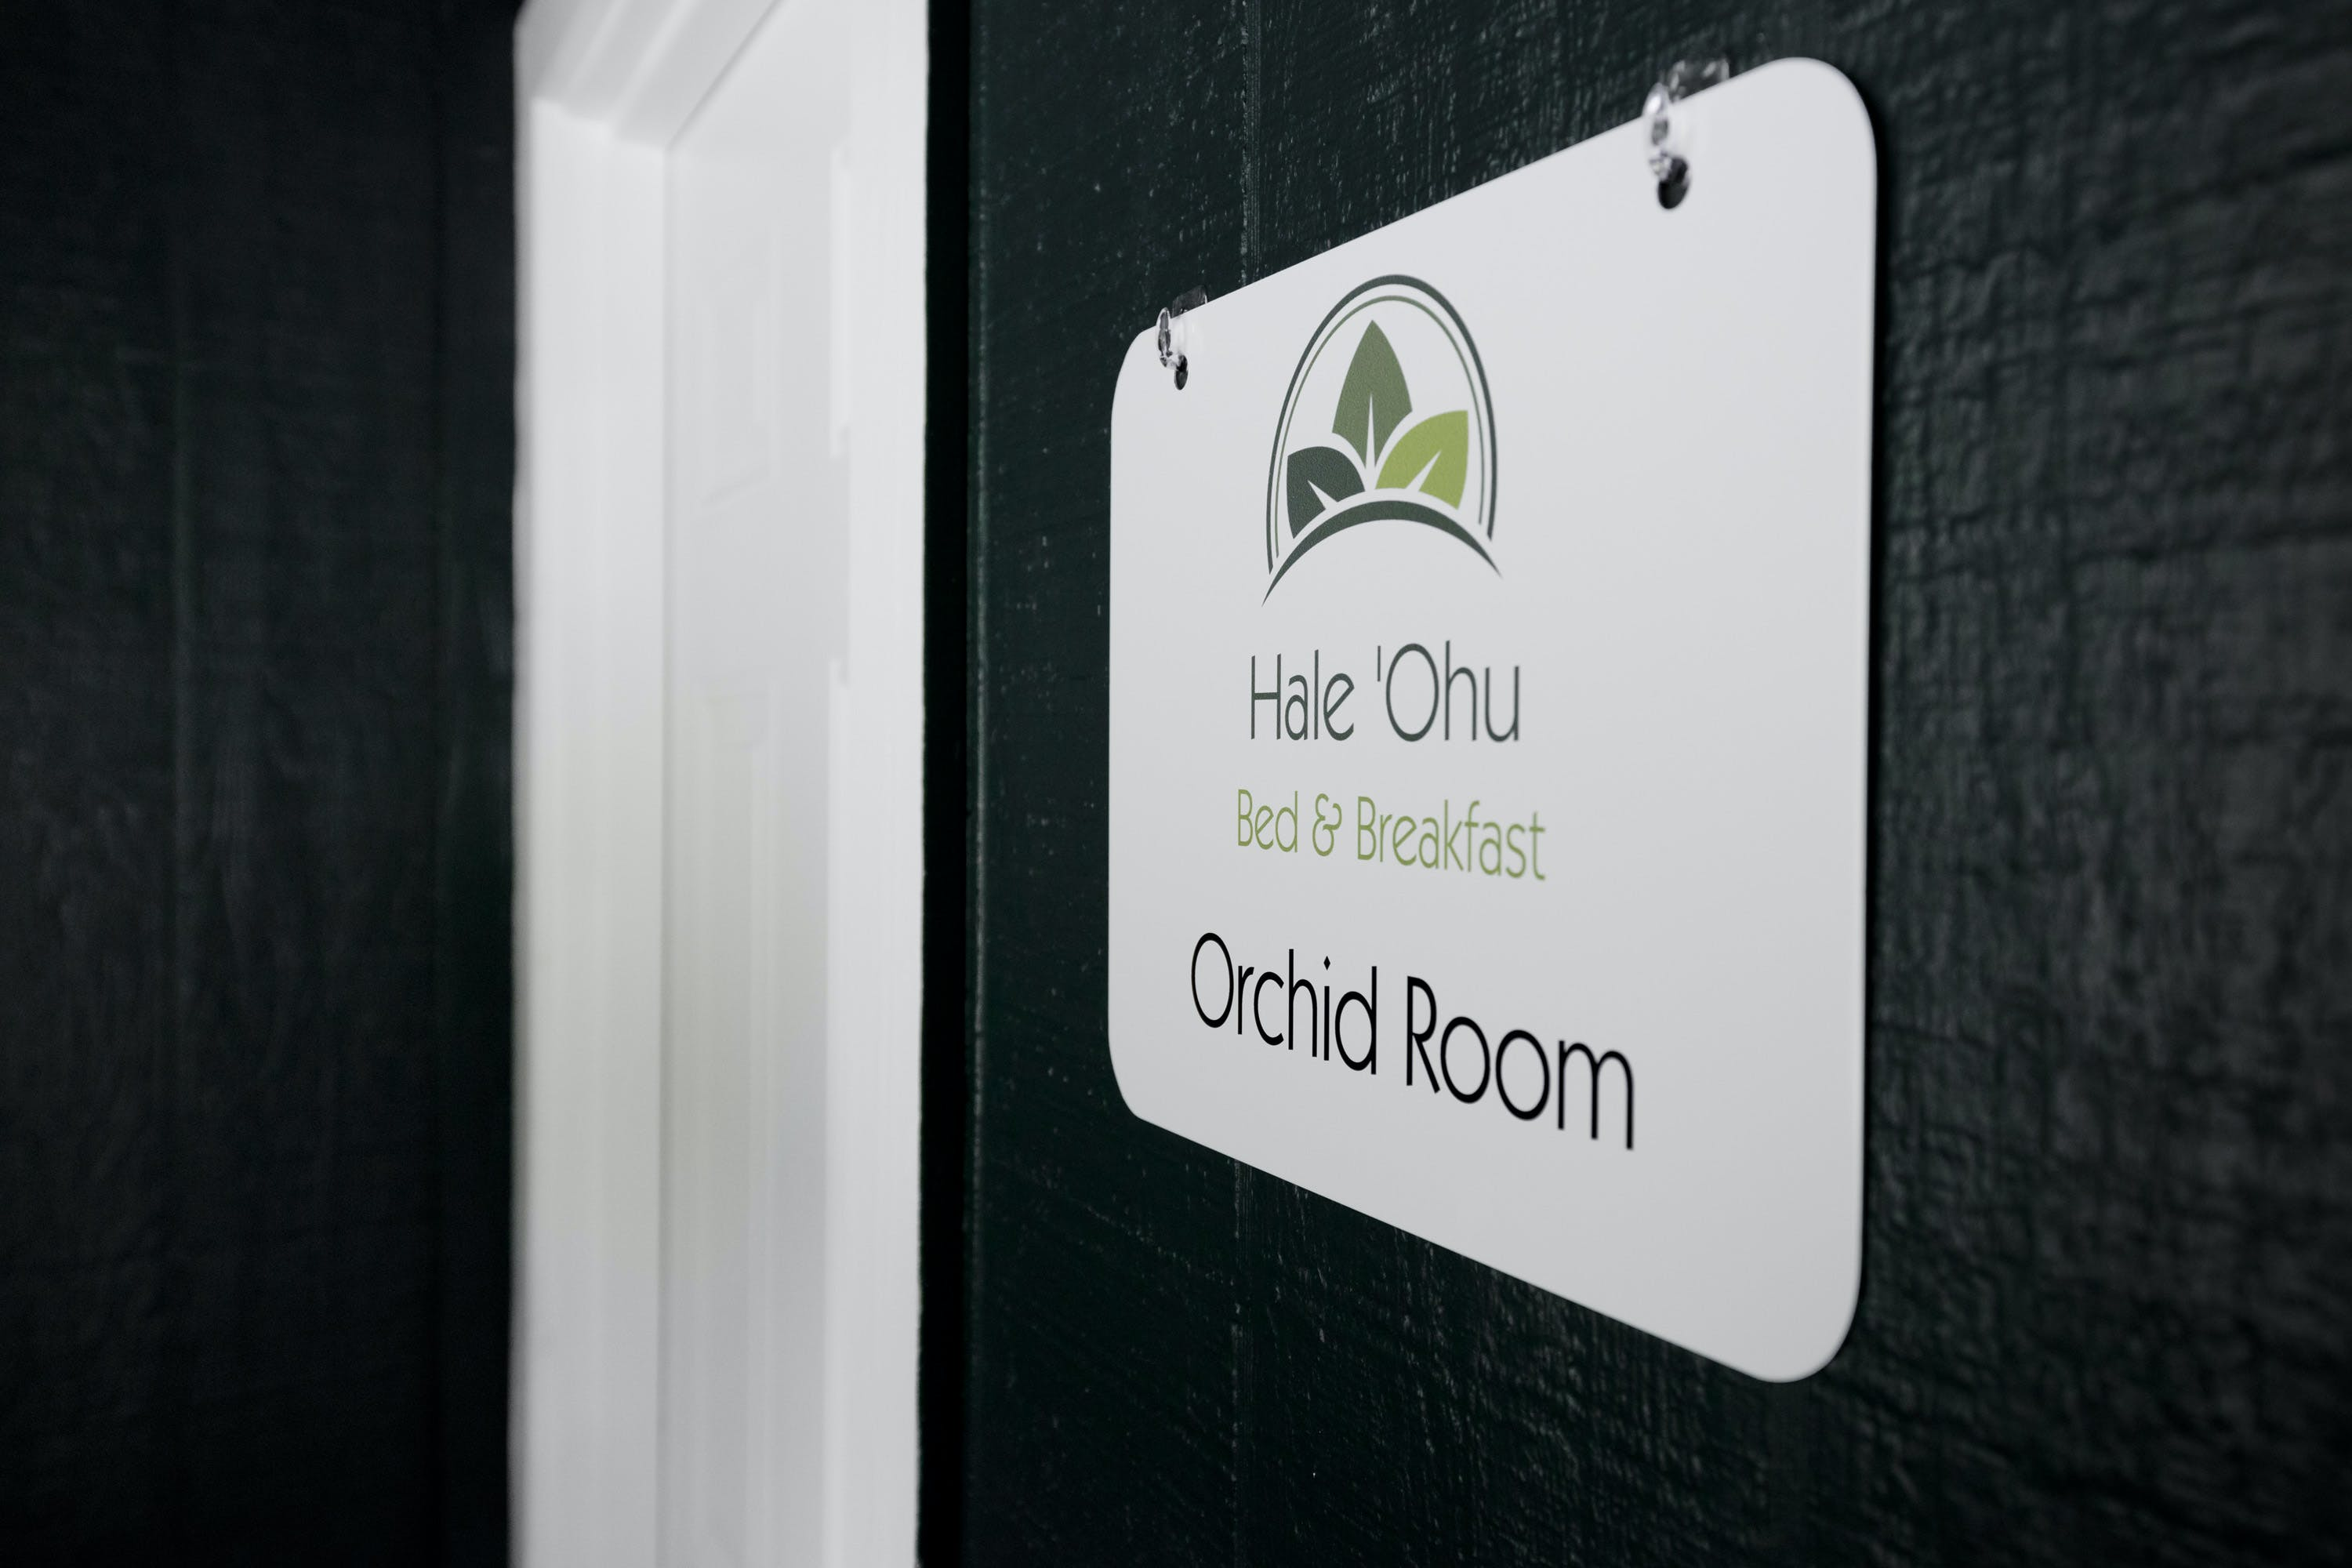 Orchid Room